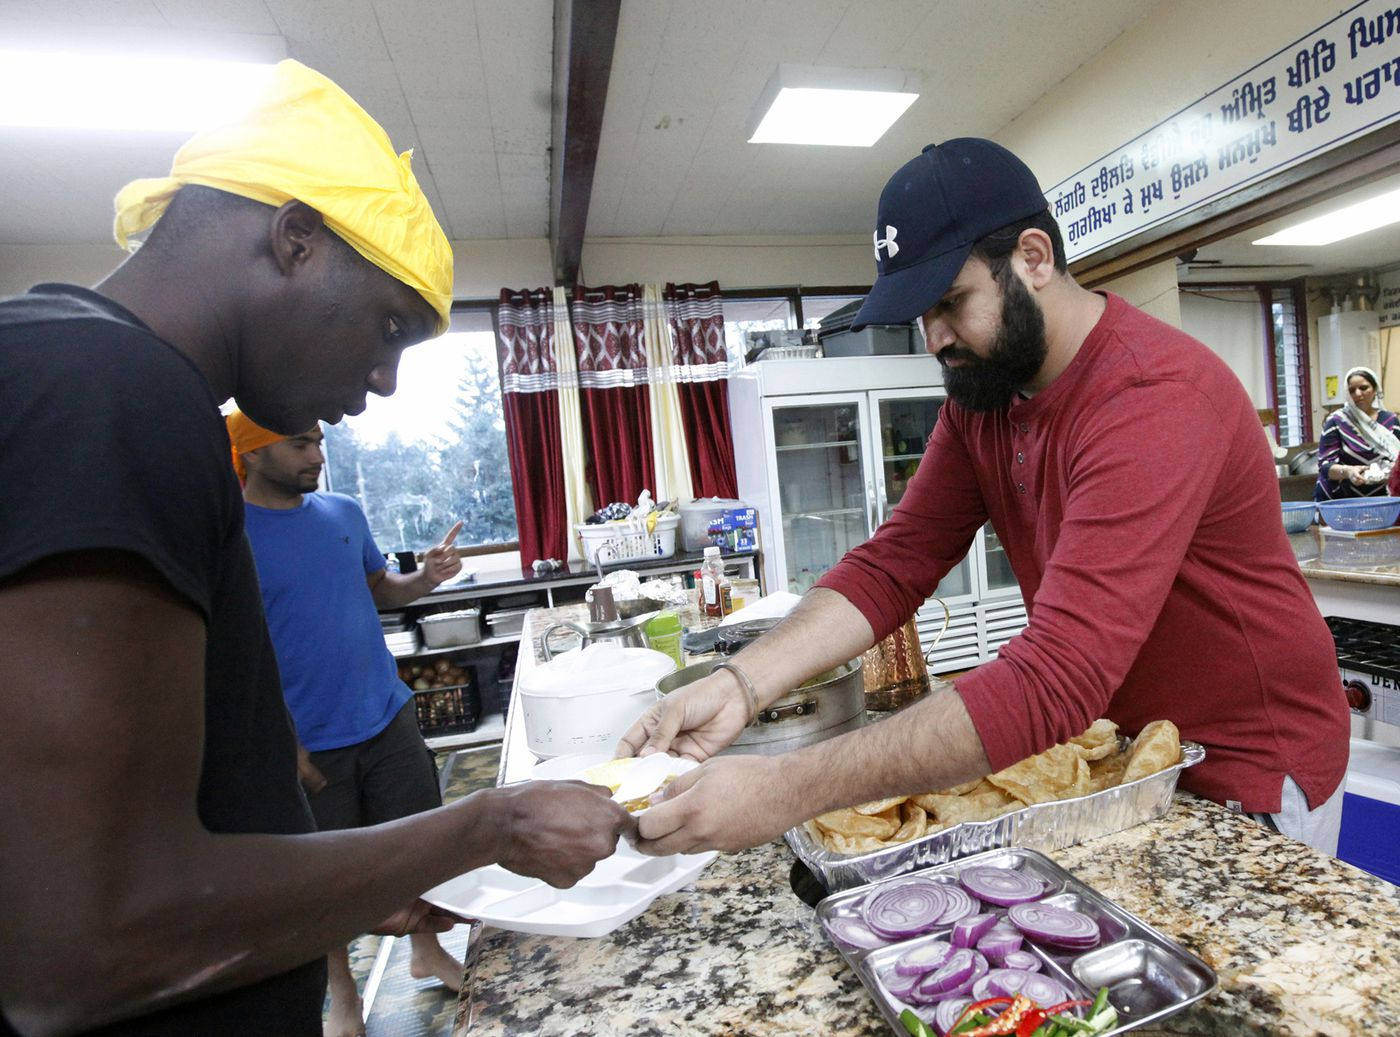 In this Wednesday, Oct. 3, 2018, photo, Karandeep Singh, right, serves a bowl of curry to Abdoulaye Camara at the Dasmesh Darbar Sikh temple in Salem, Ore. Both are immigrants who were recently freed from the federal prison in Sheridan, Ore. Singh was released in late August 2018, and Camara had been released that afternoon. (AP Photo/Amanda Loman)